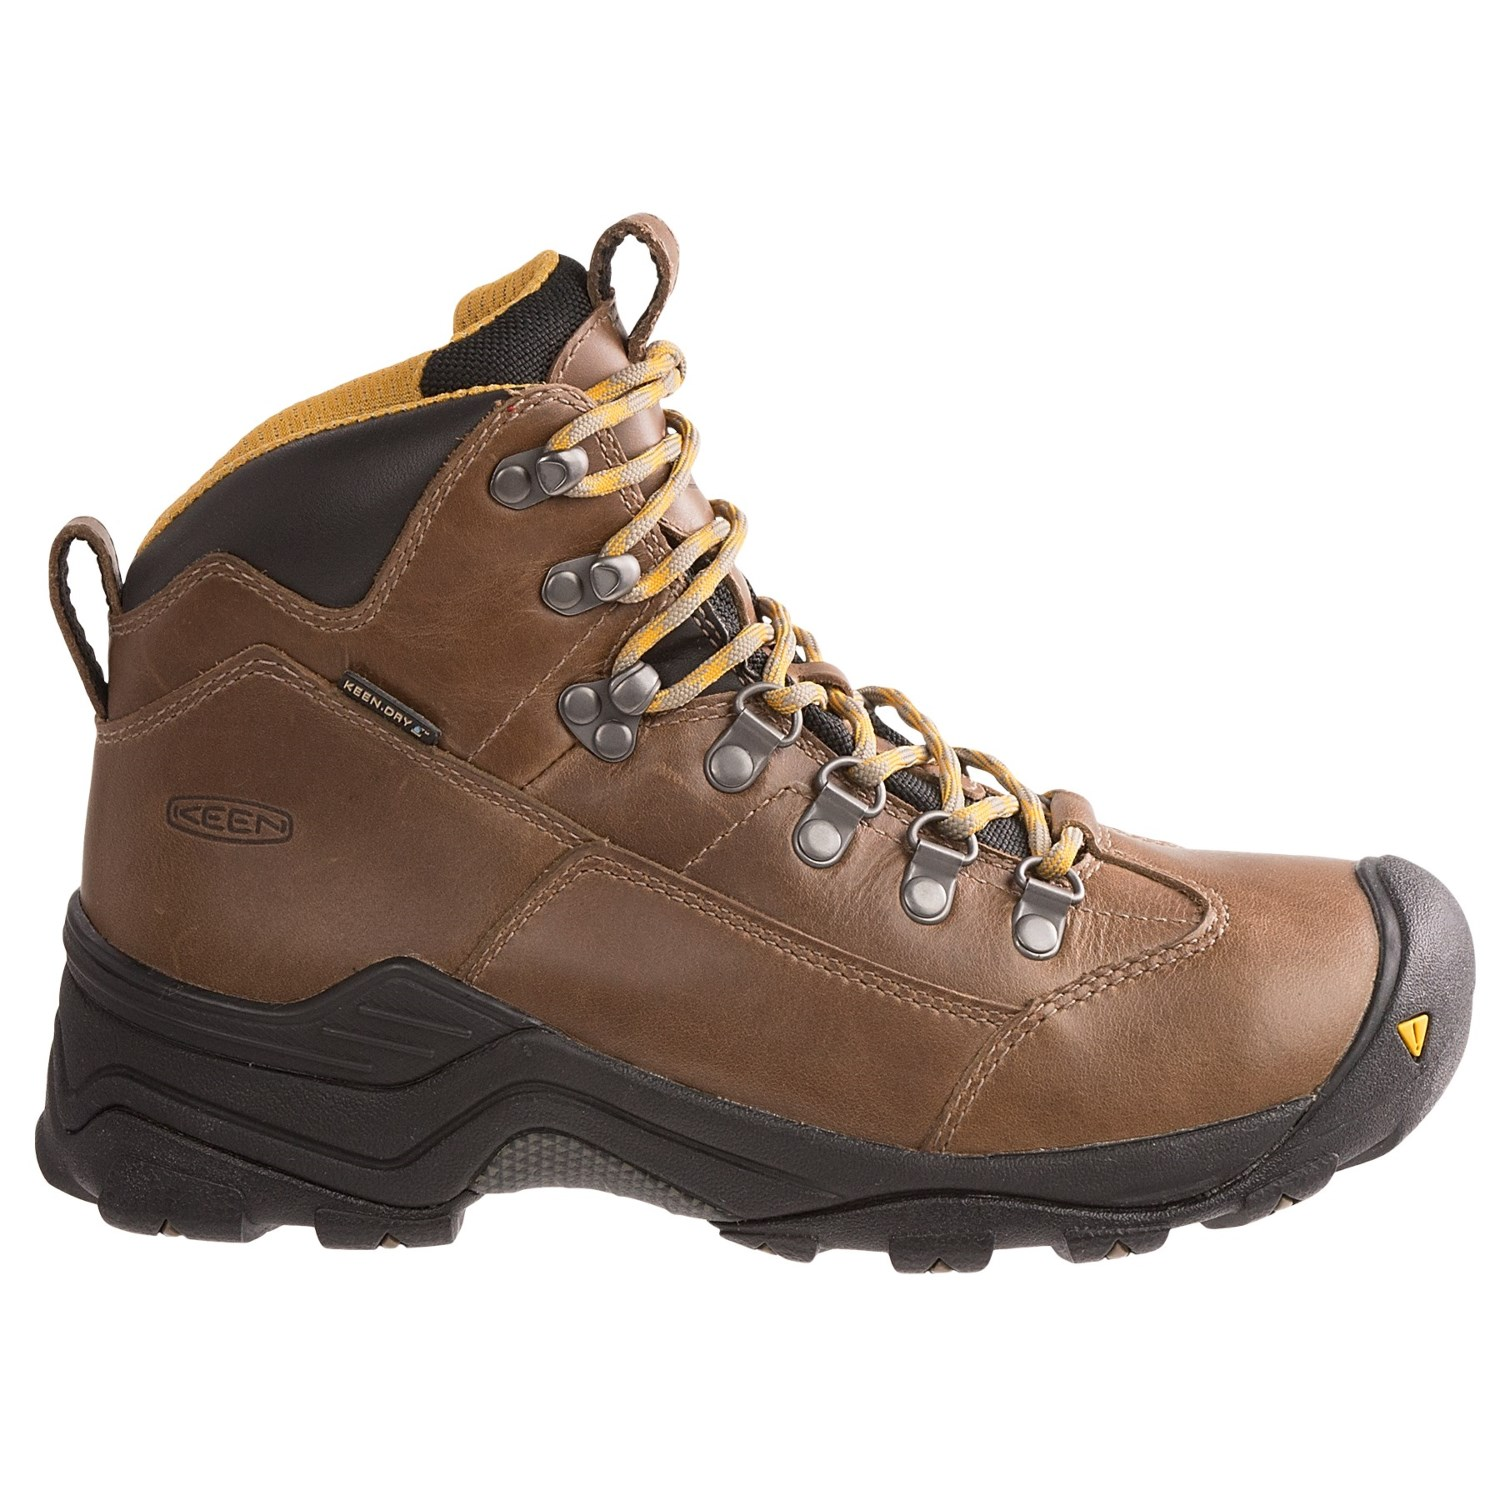 Simple So Choosing A Waterproof Hiking Book Will Do Wonders In Helping You Enjoy Time Outside, And These Boots From Keen Offer Great Comfort And Performance Right Out Of The Box The Terradora Are Designed Specifically For Women, With A Narrower